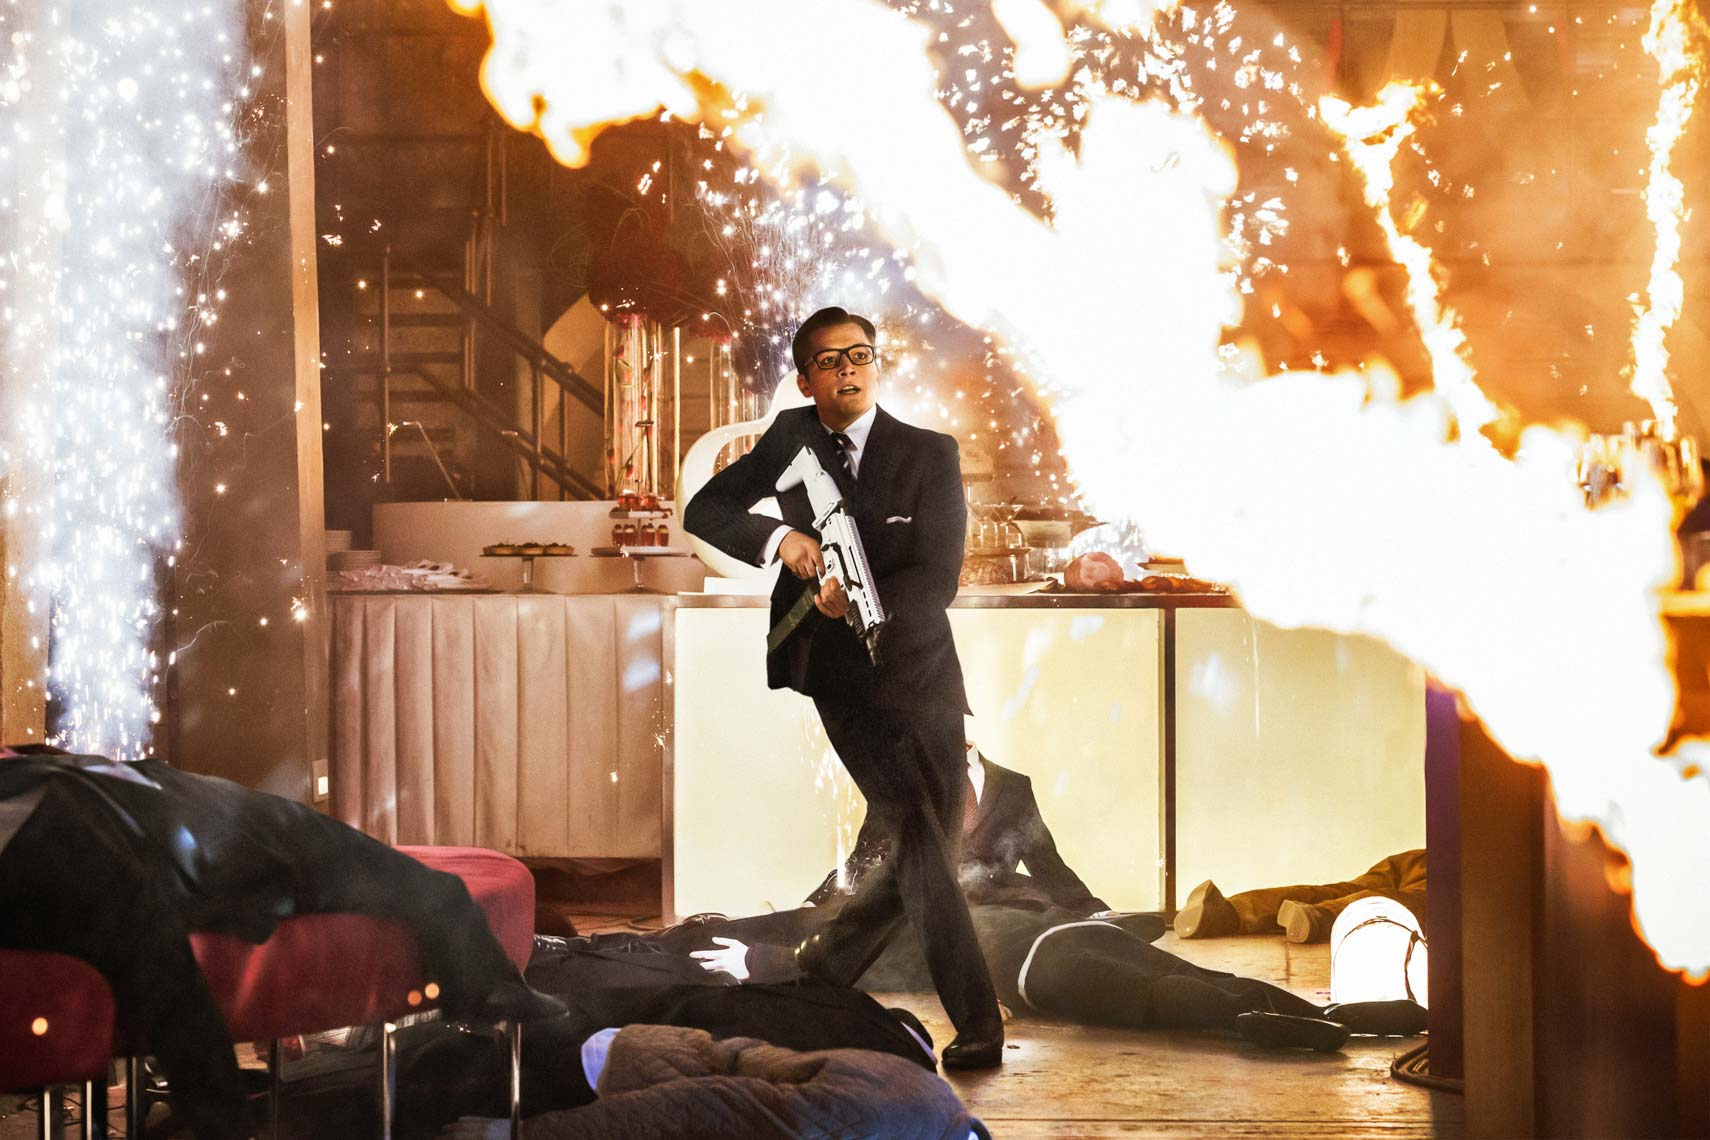 kingsman-the-secret-service_csXHcU